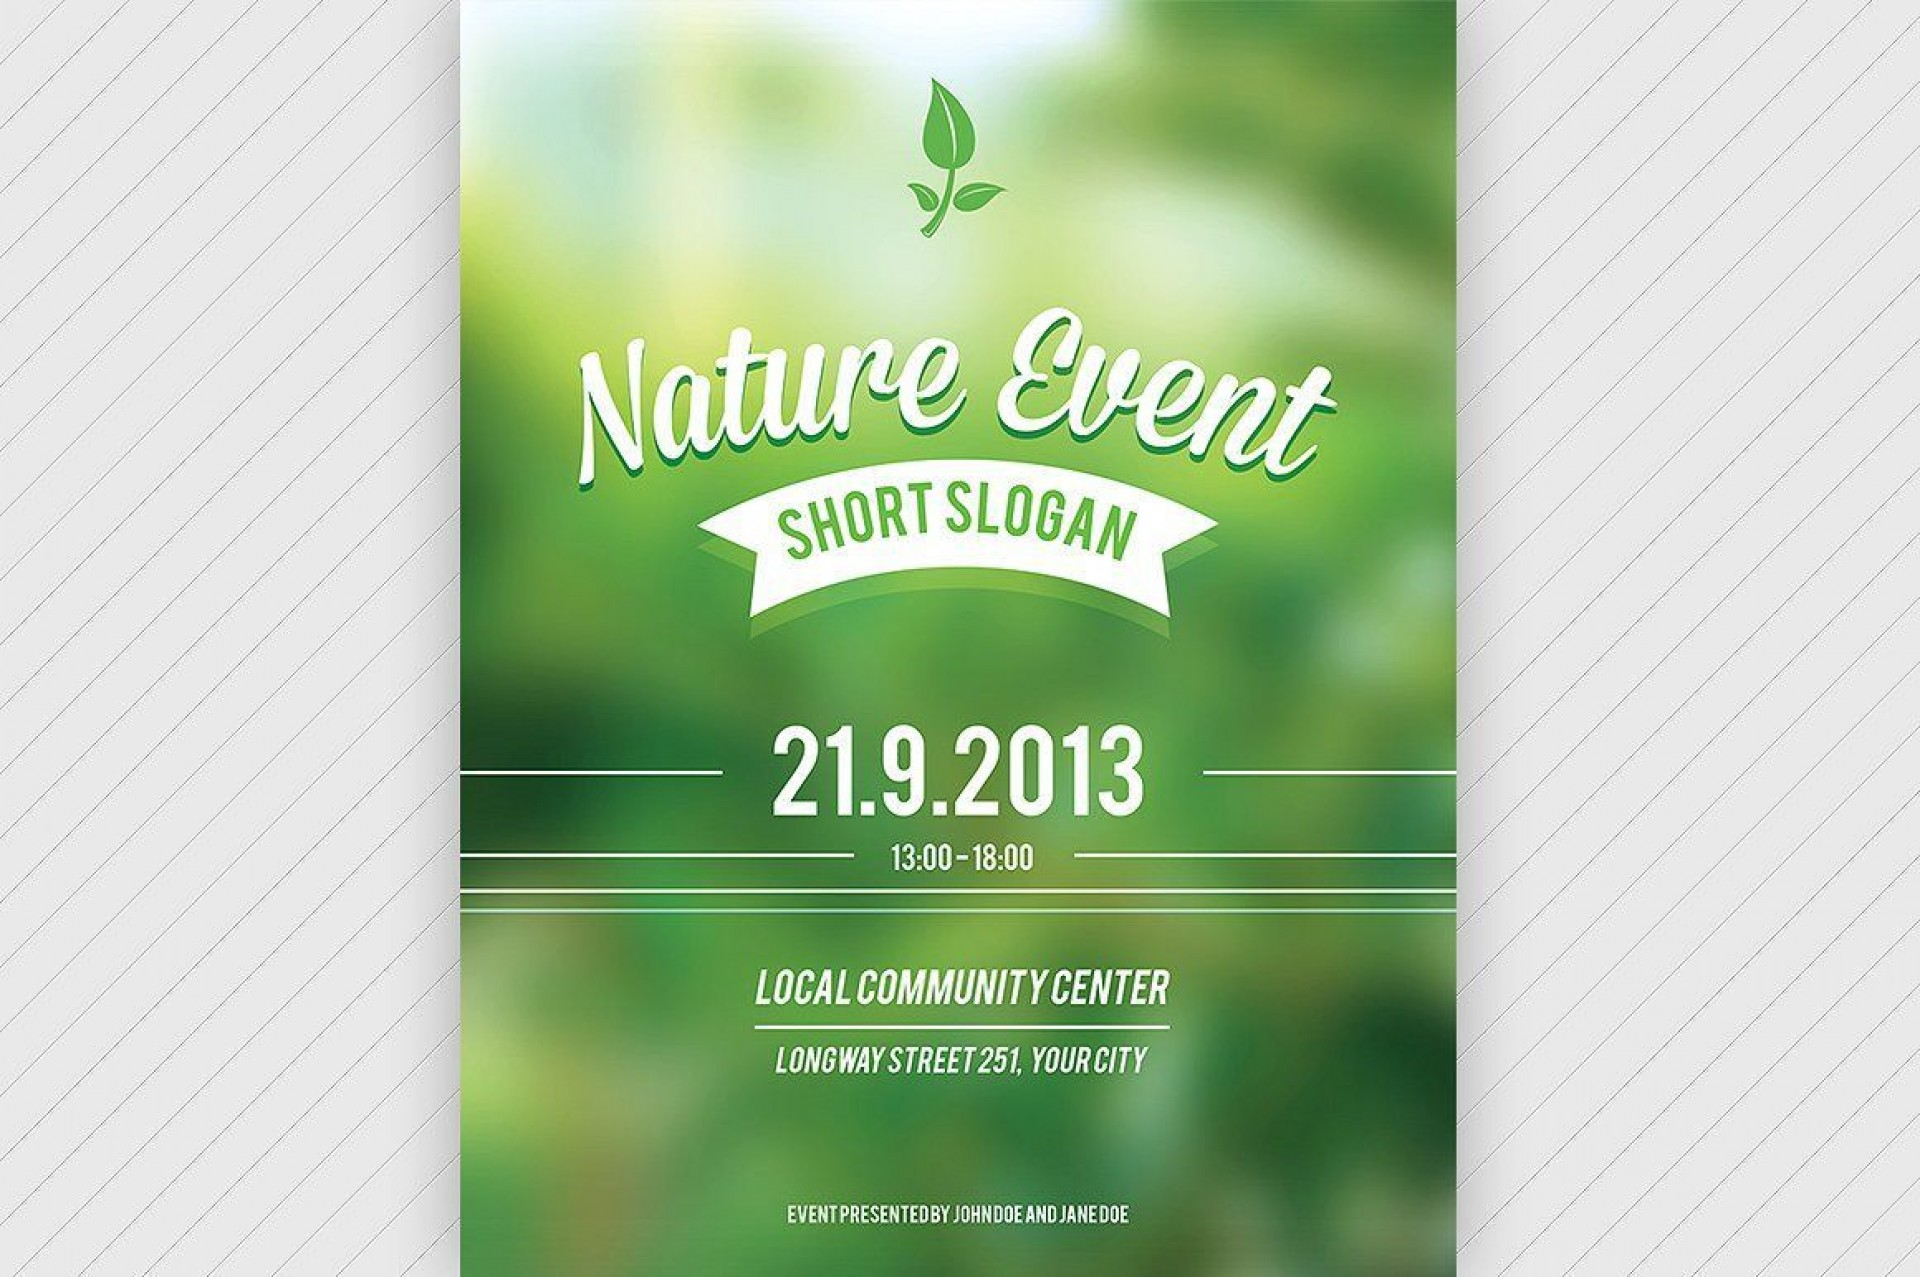 006 Fascinating Event Flyer Template Word Highest Quality  Free Spring1920